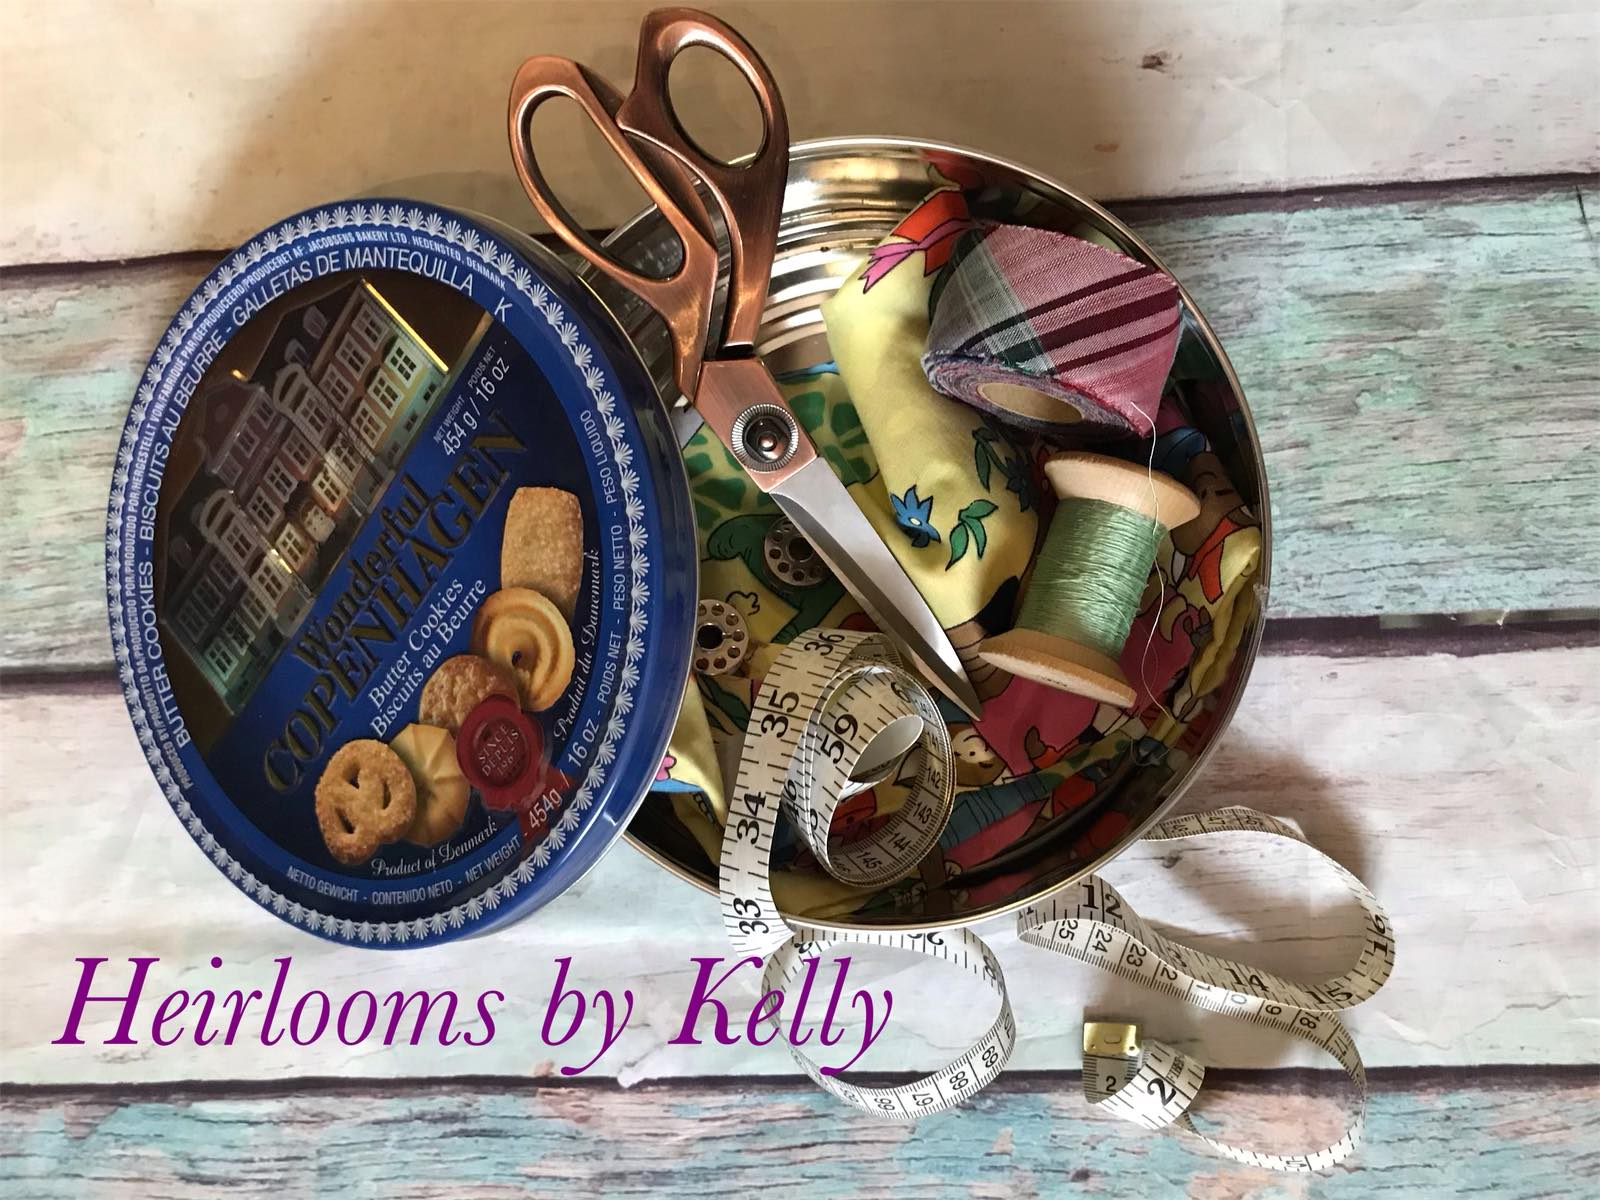 Heirlooms by Kelly